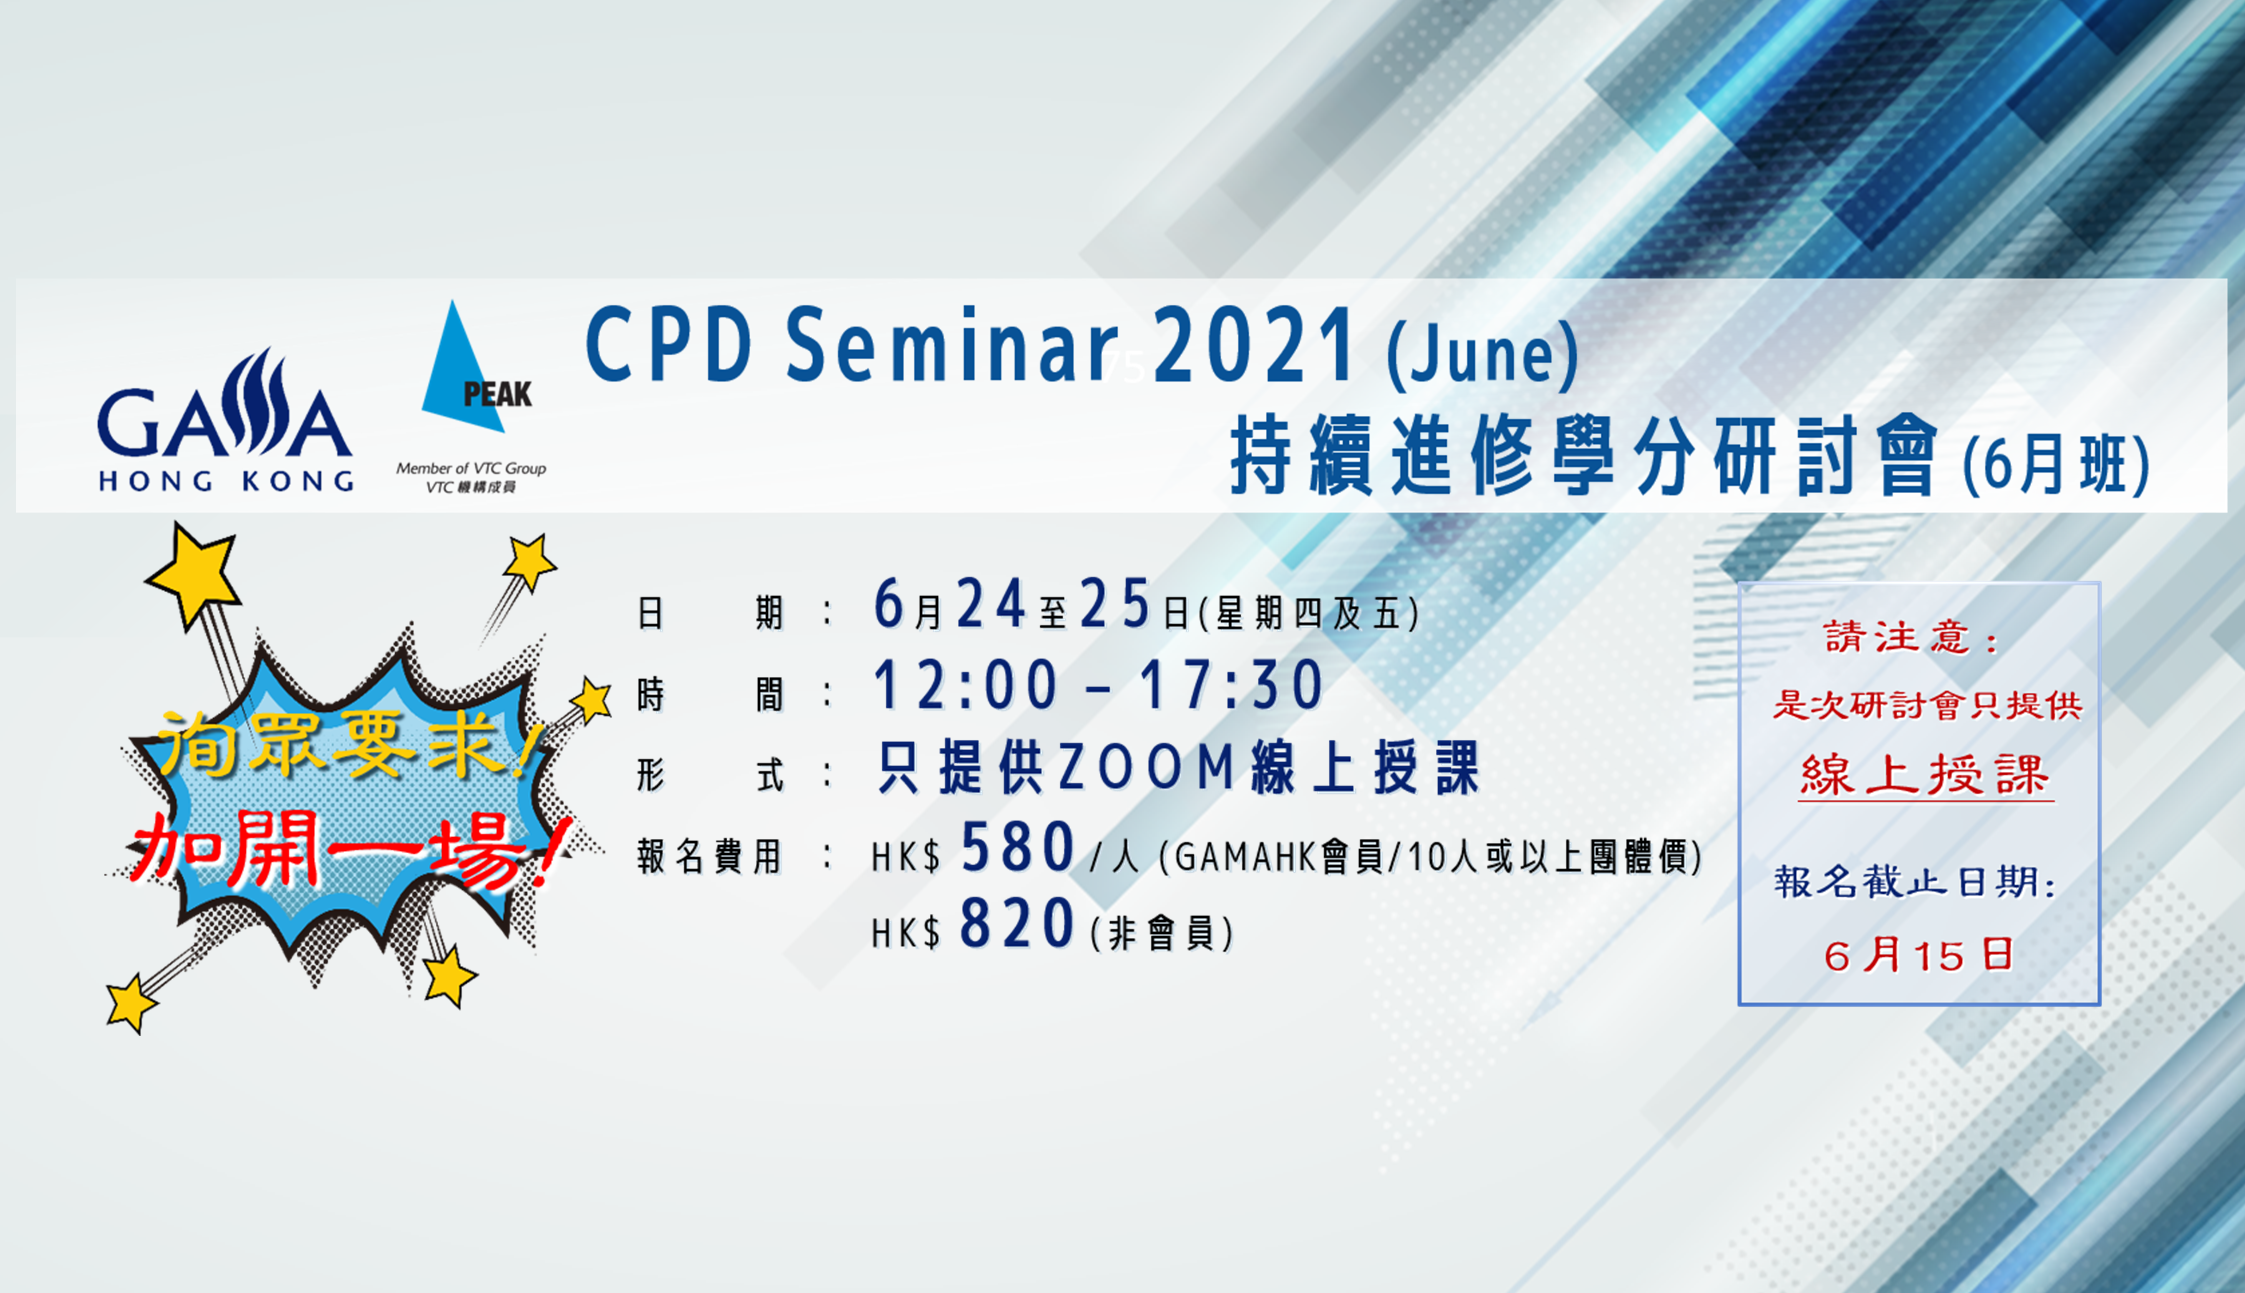 20210520 CPD – Website What's New